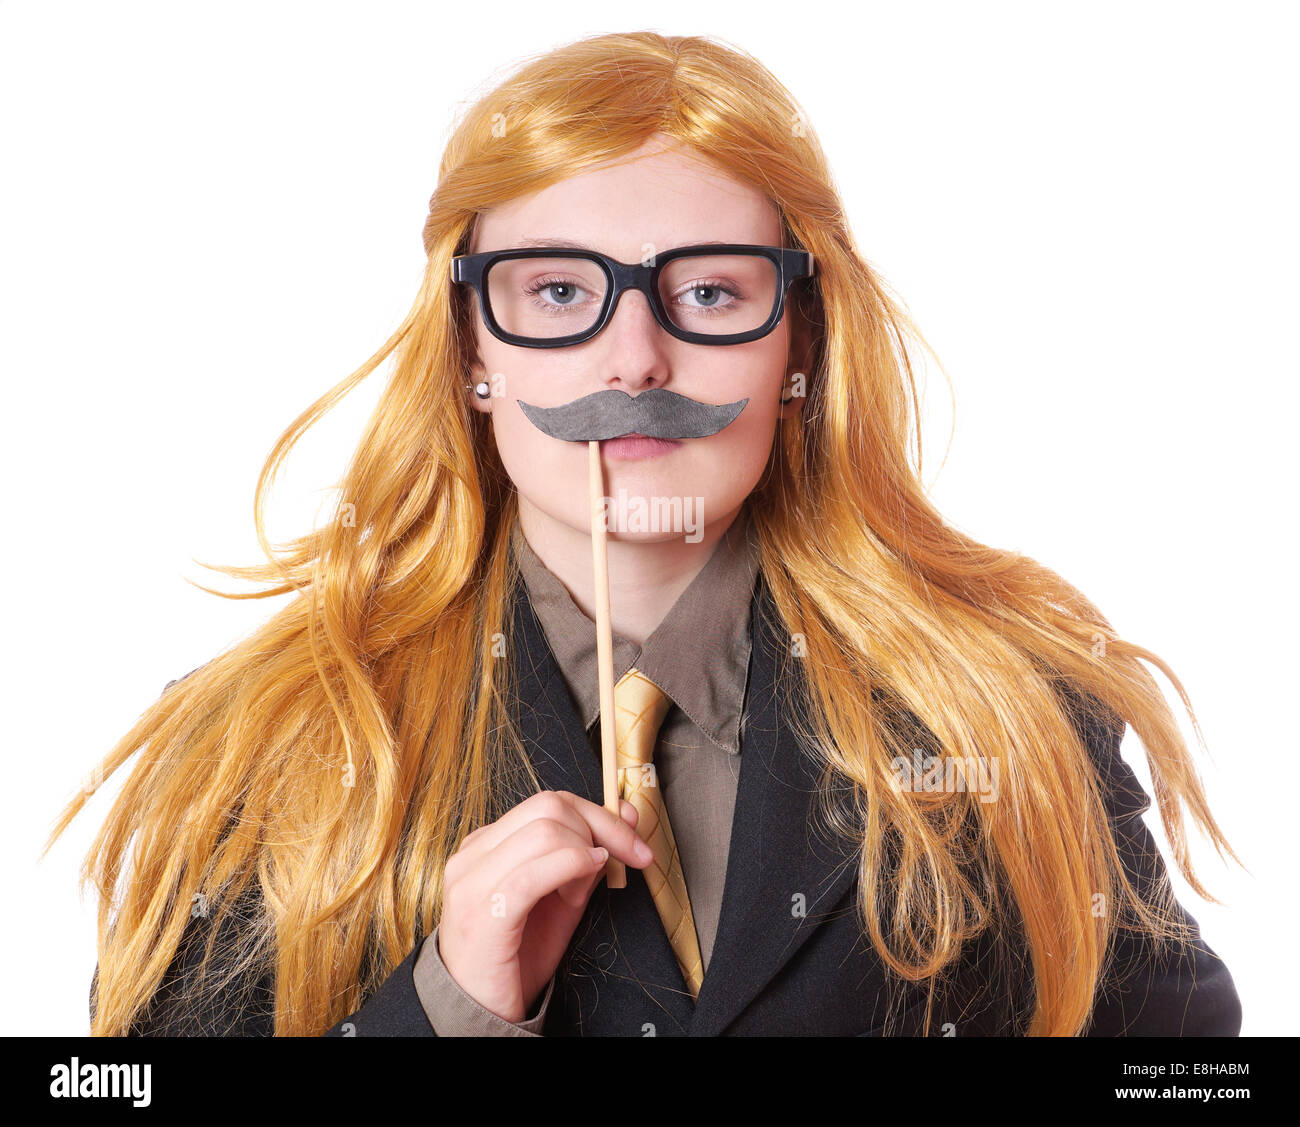 young woman with fake moustache dressed up as a man - Stock Image